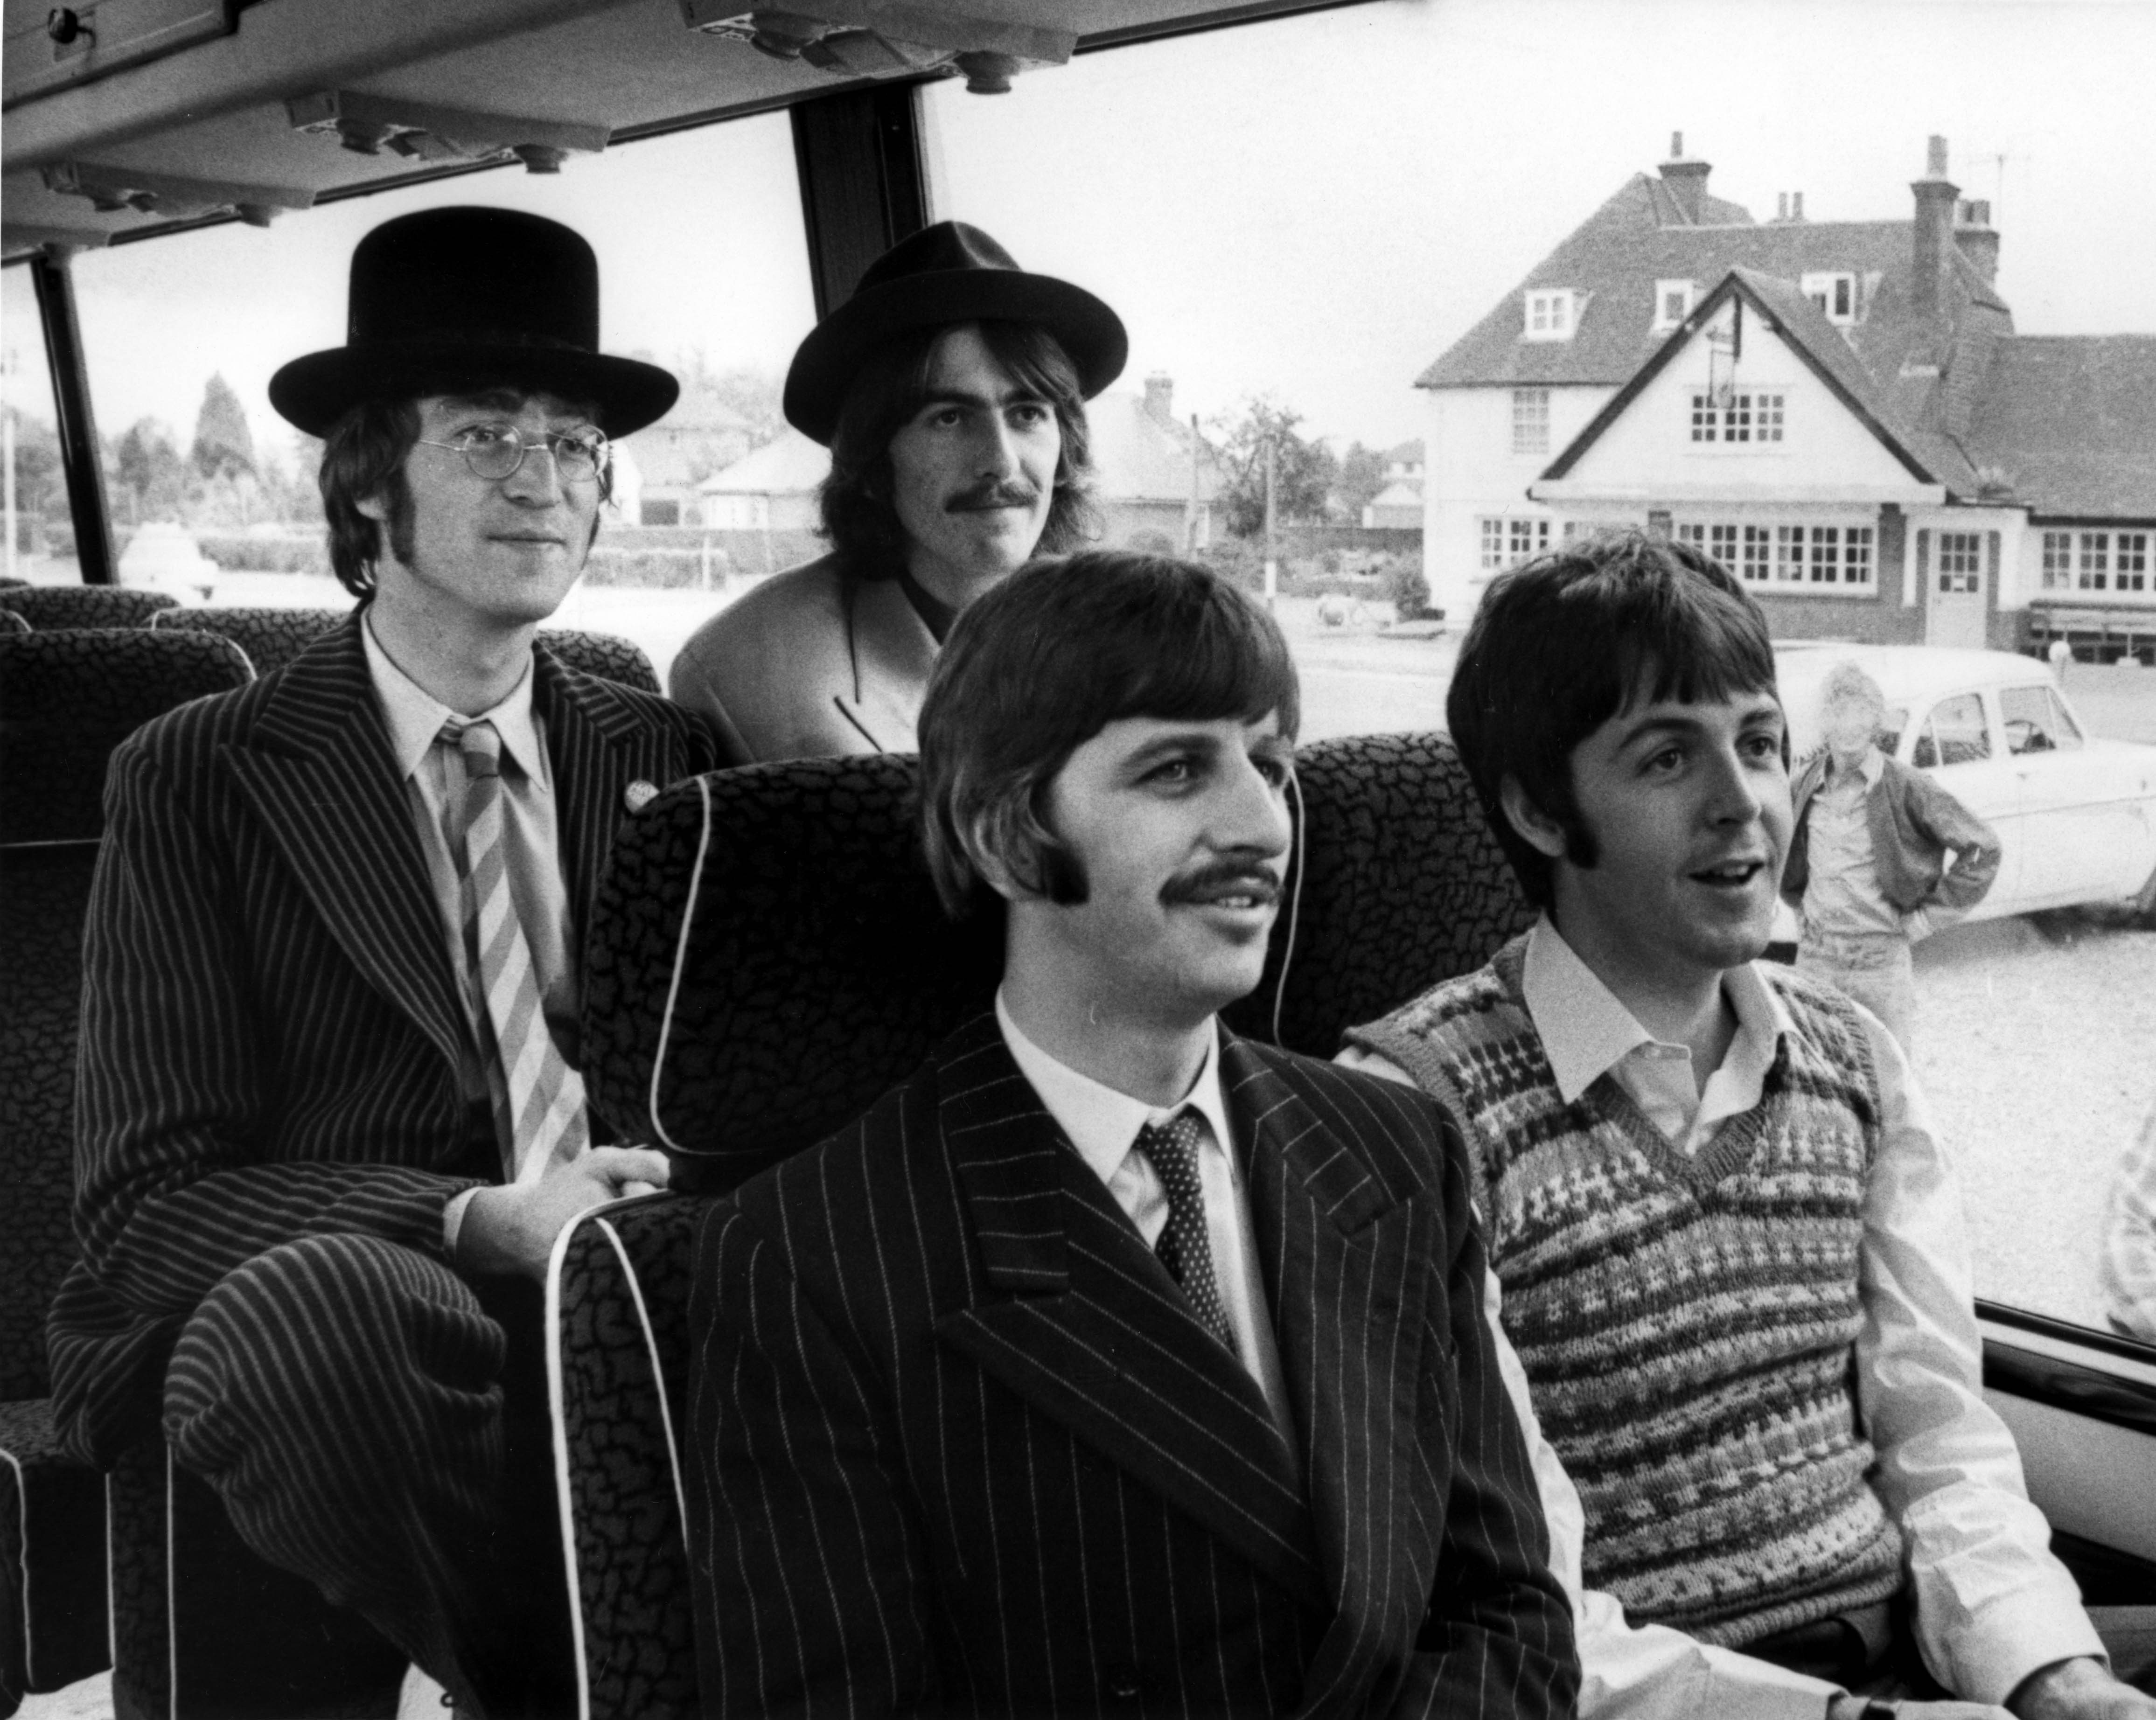 'Magical Mystery Tour': Inside Beatles' Psychedelic Album Odyssey